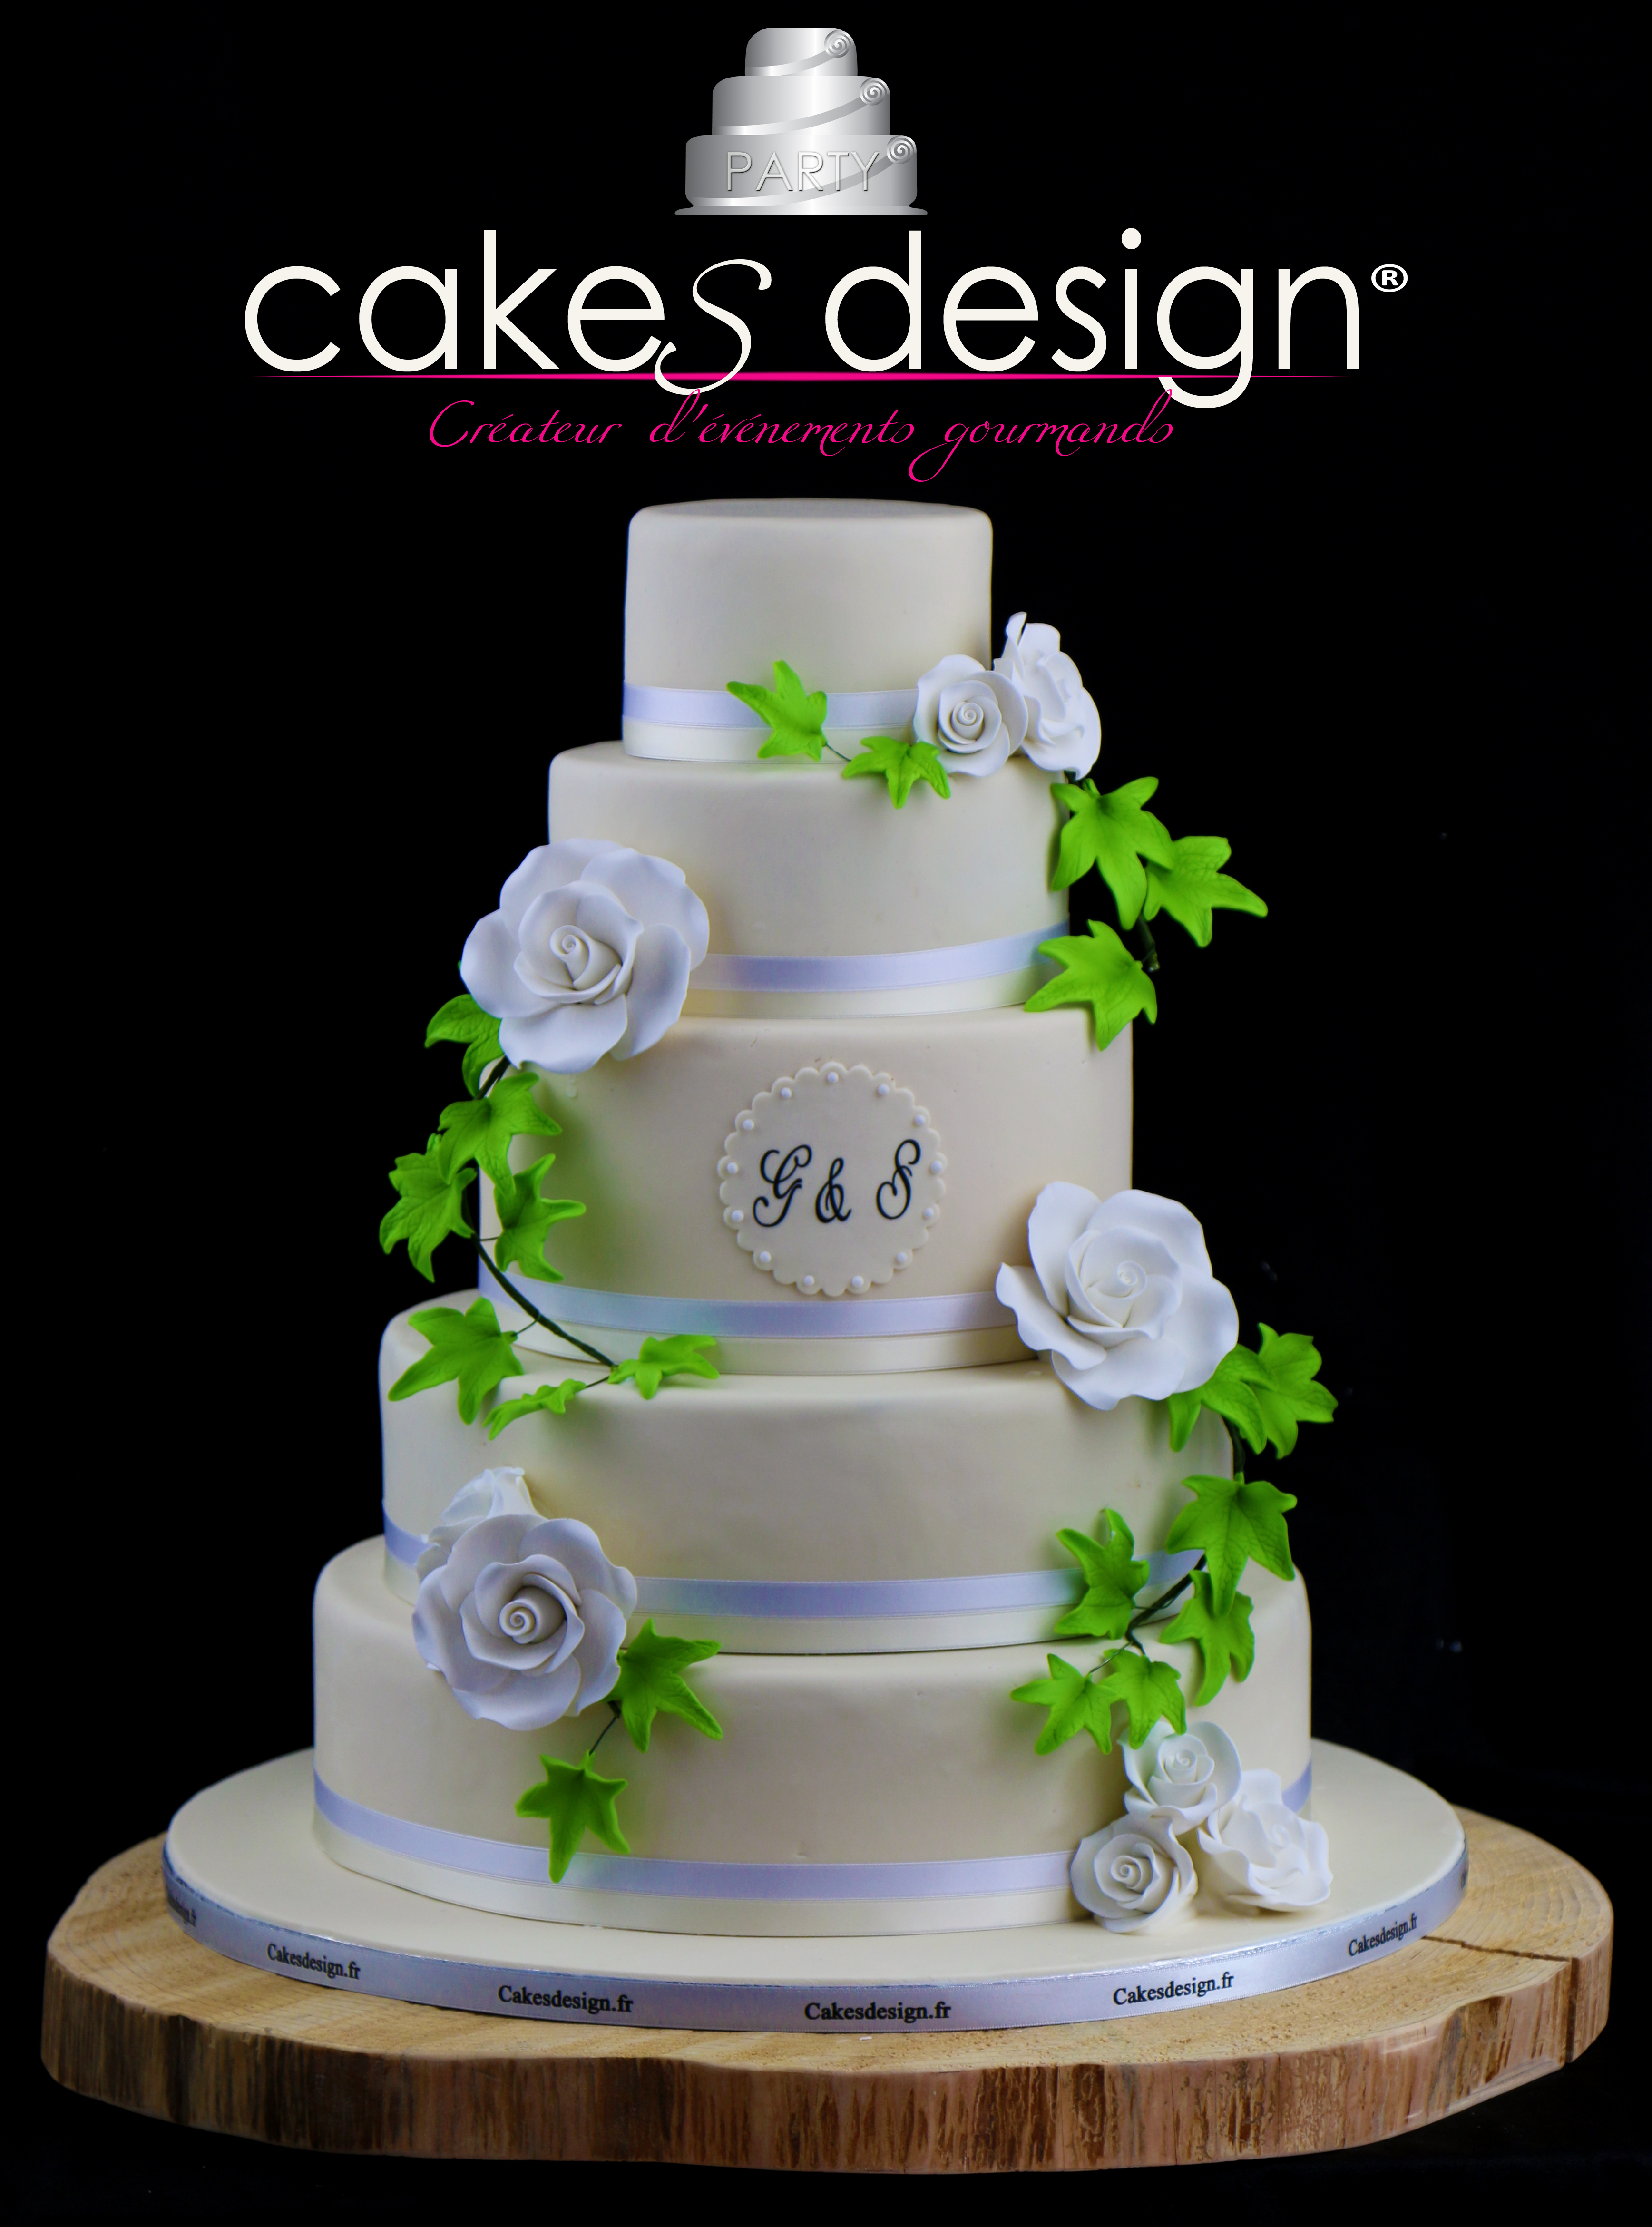 Cours Cake Design Toulouse : Cake decorating Toulouse - Cakes design